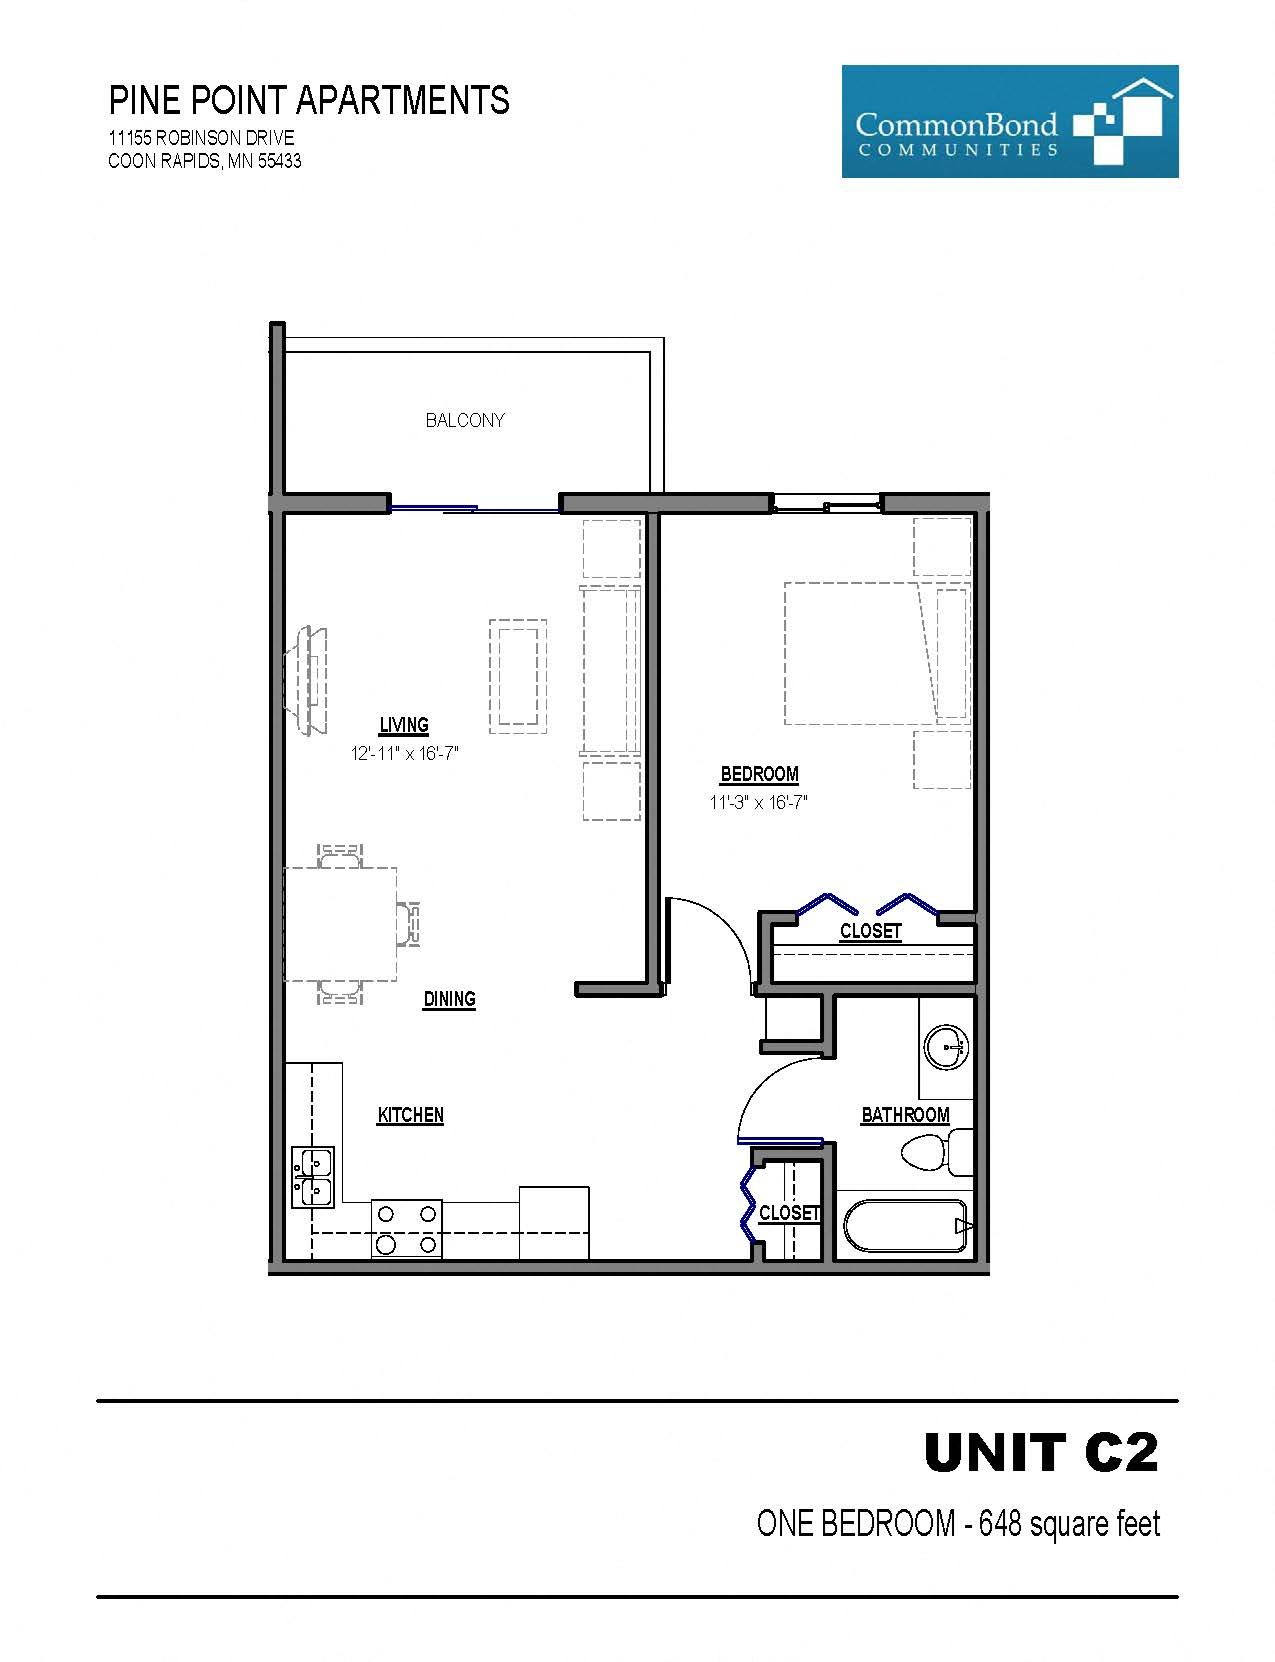 Unit C2 Floor Plan 4